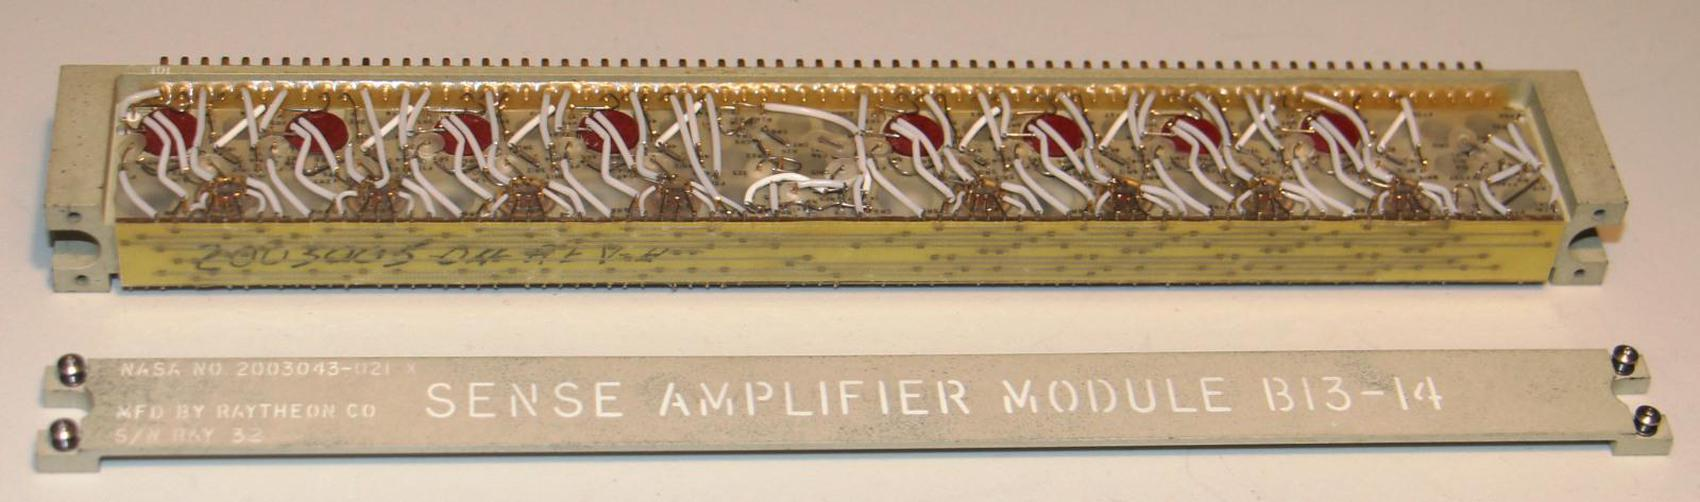 Sense amplifier module with the top removed. Note the nickel ribbon interconnect at the top of the module.